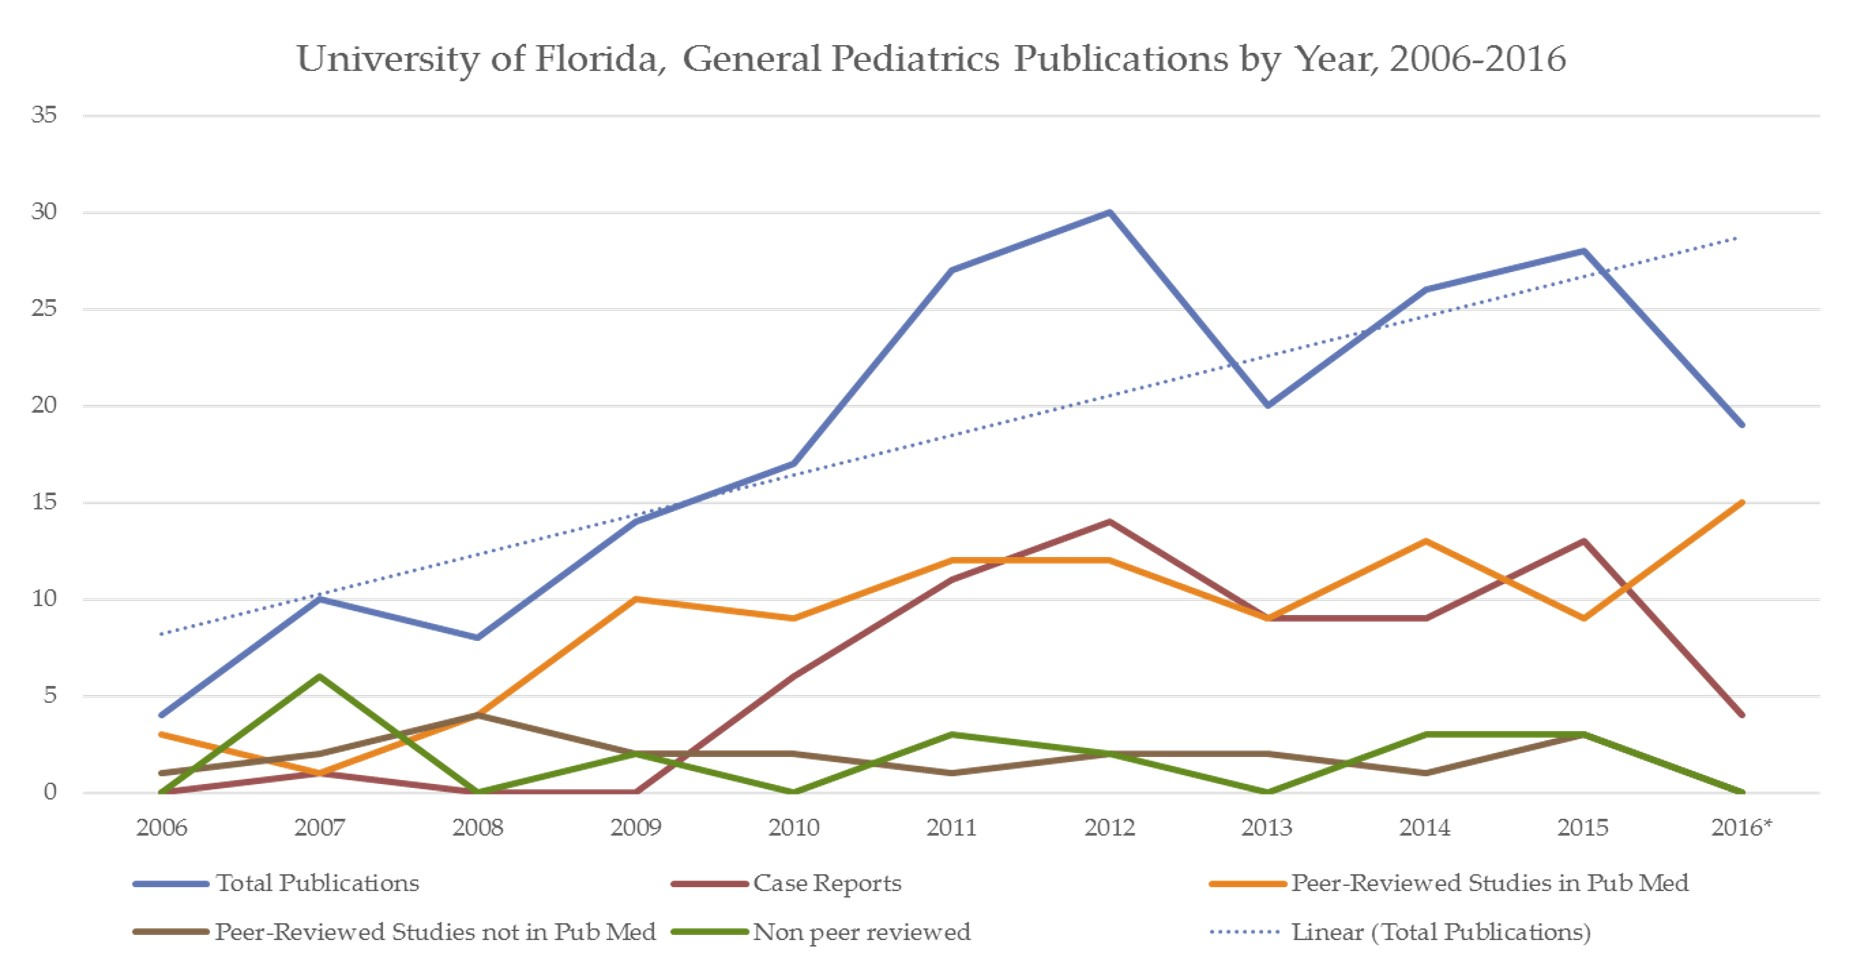 Line graph showing the publication from General Pediatric from 2006 -2016